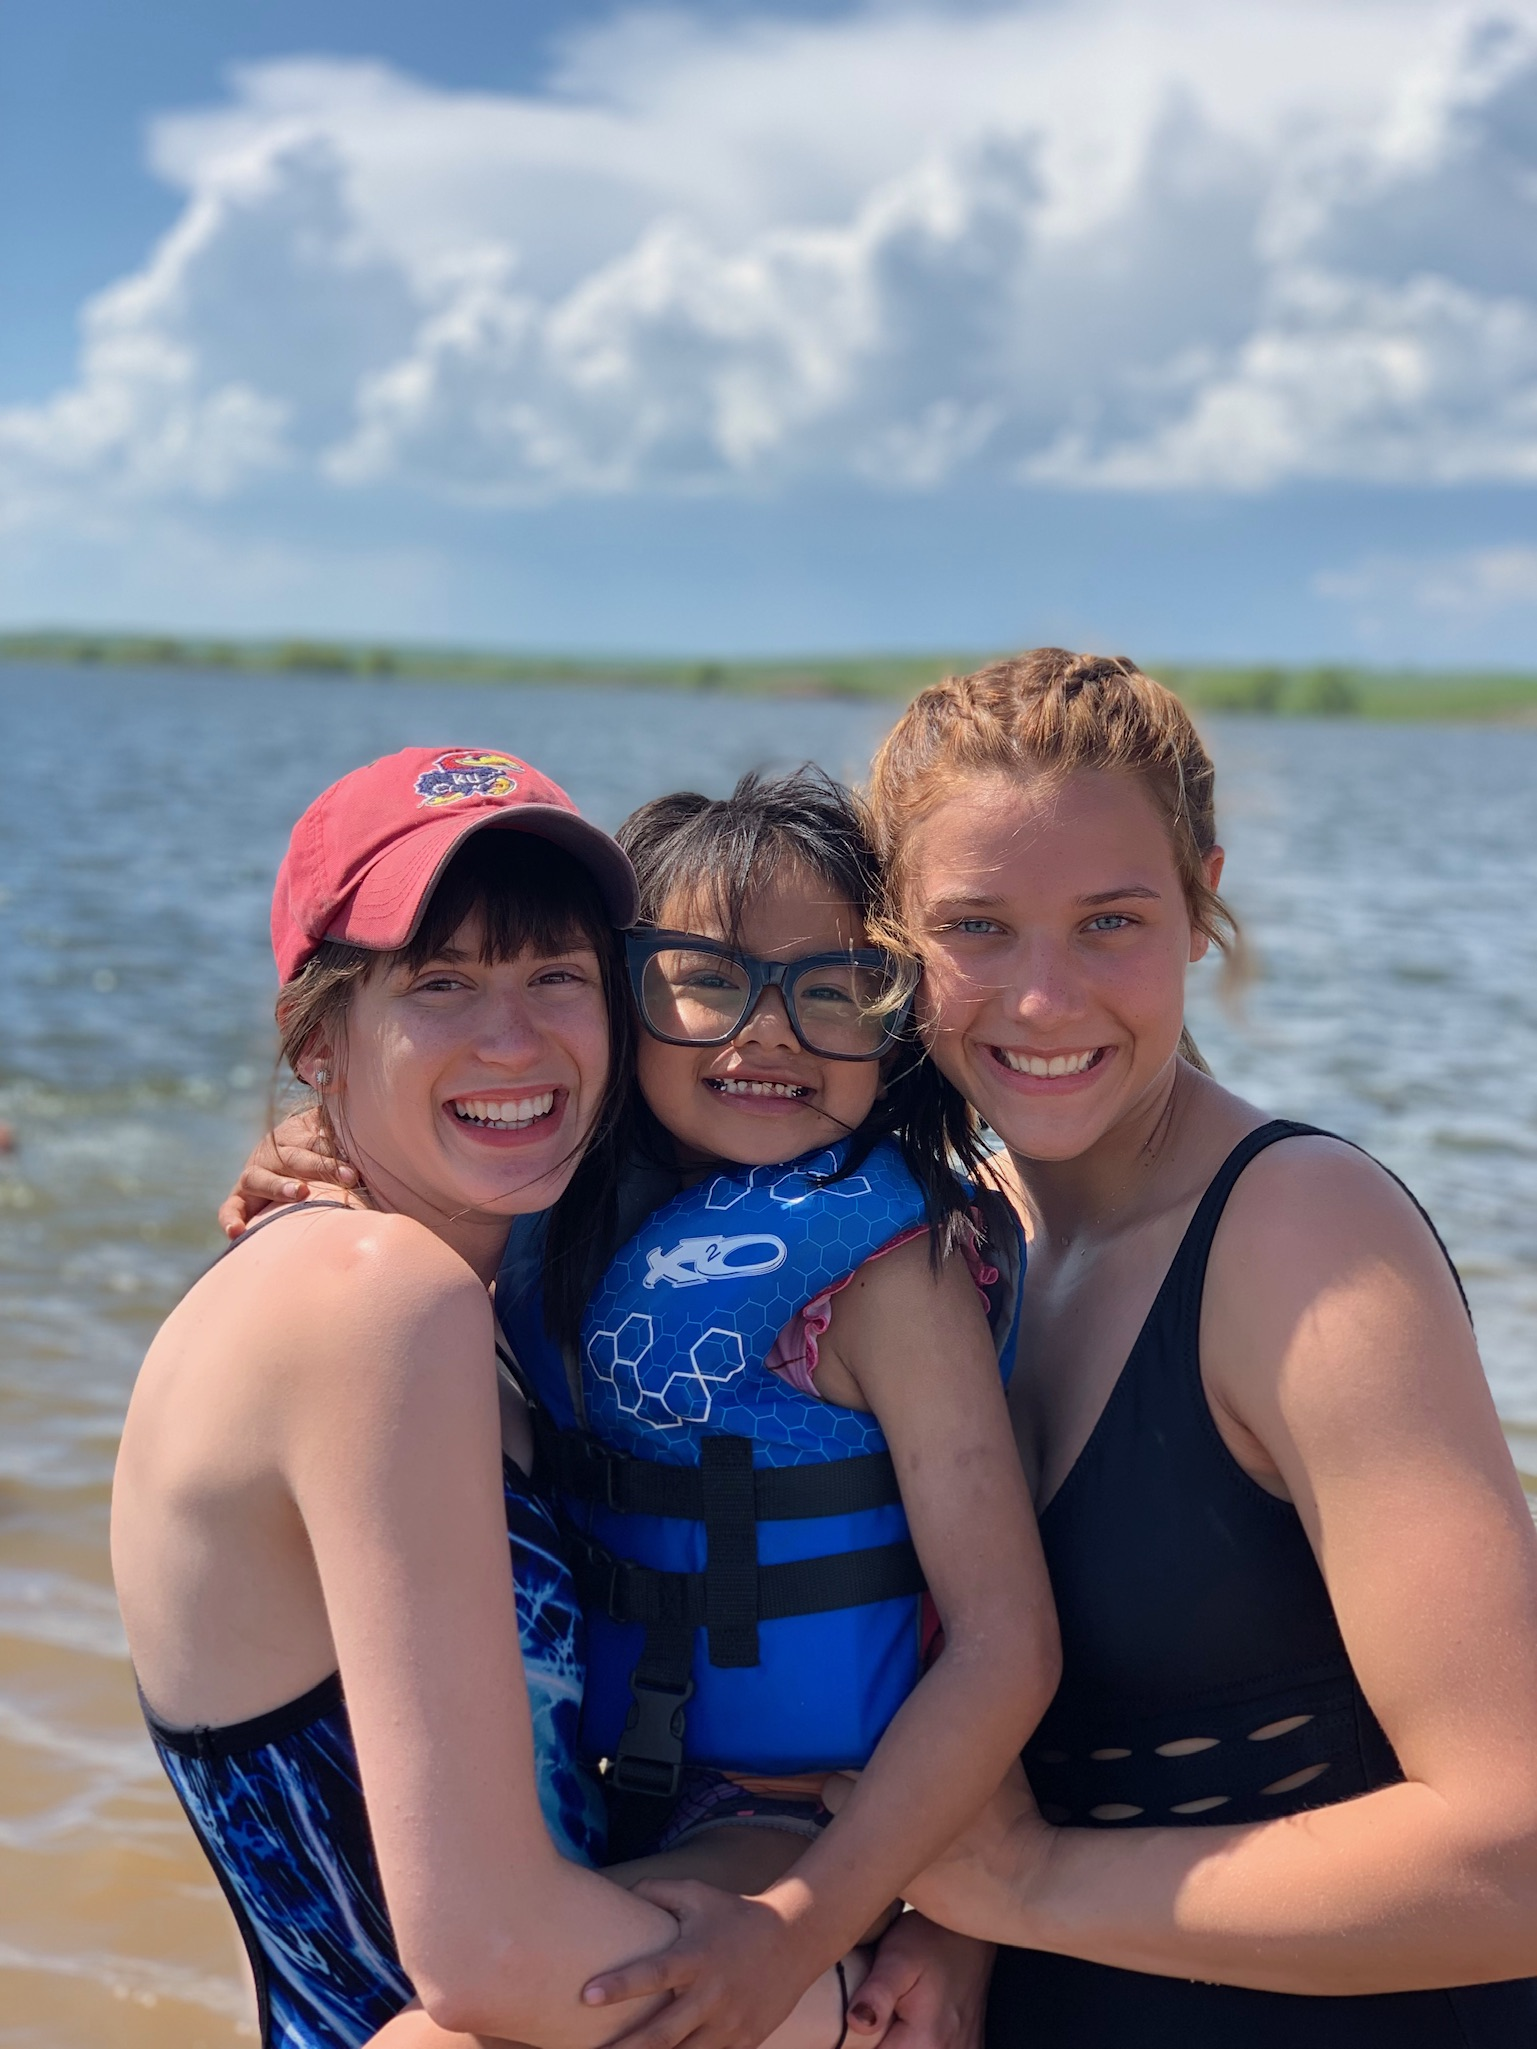 Making new friends during a  swimming trip to the Missouri River!